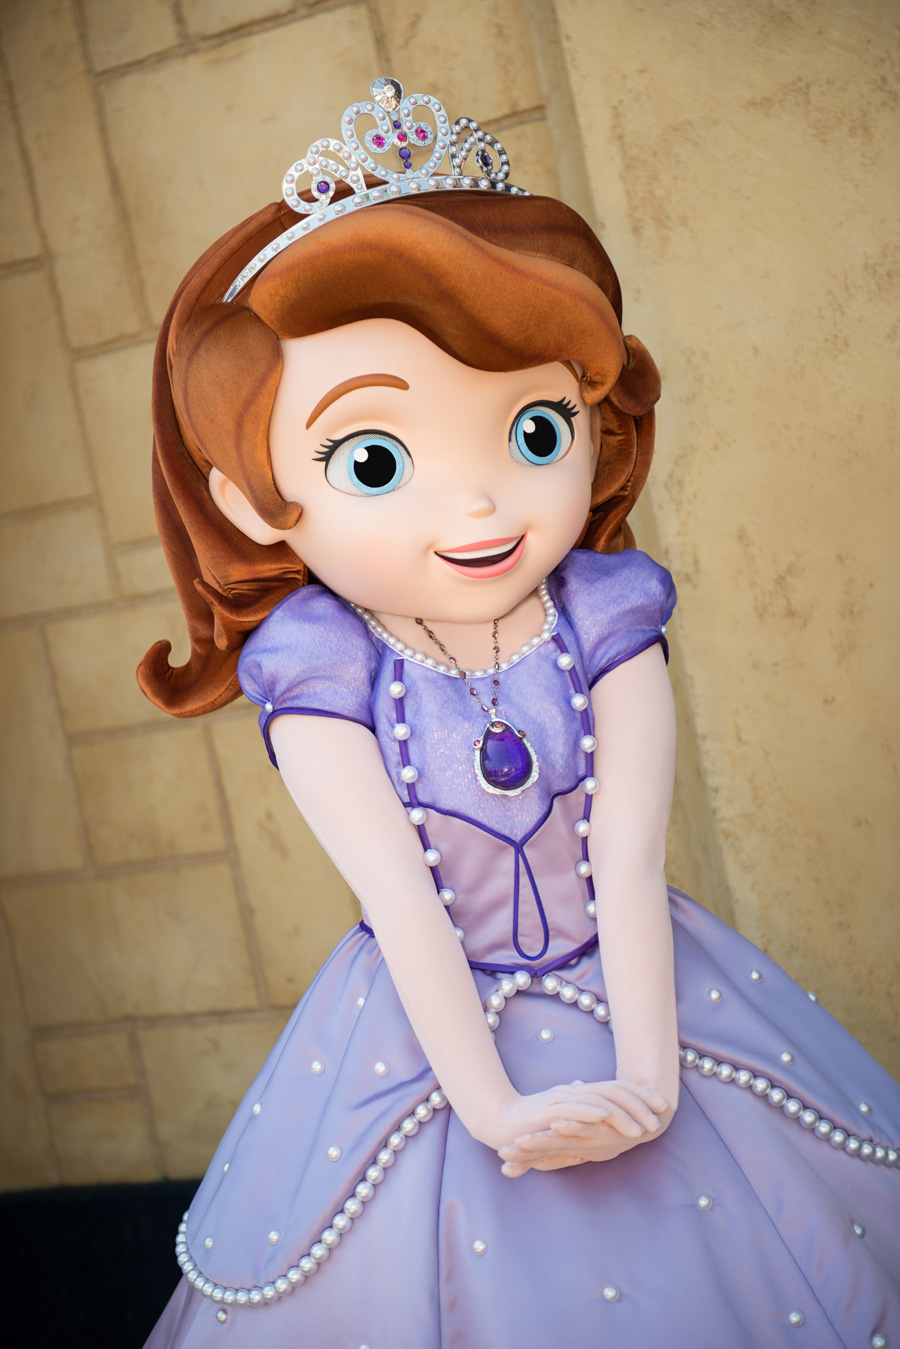 Sofia the First Has Arrived at Disney Parks. Sofia the First Has Arrived at Disney Parks   Disney Parks Blog